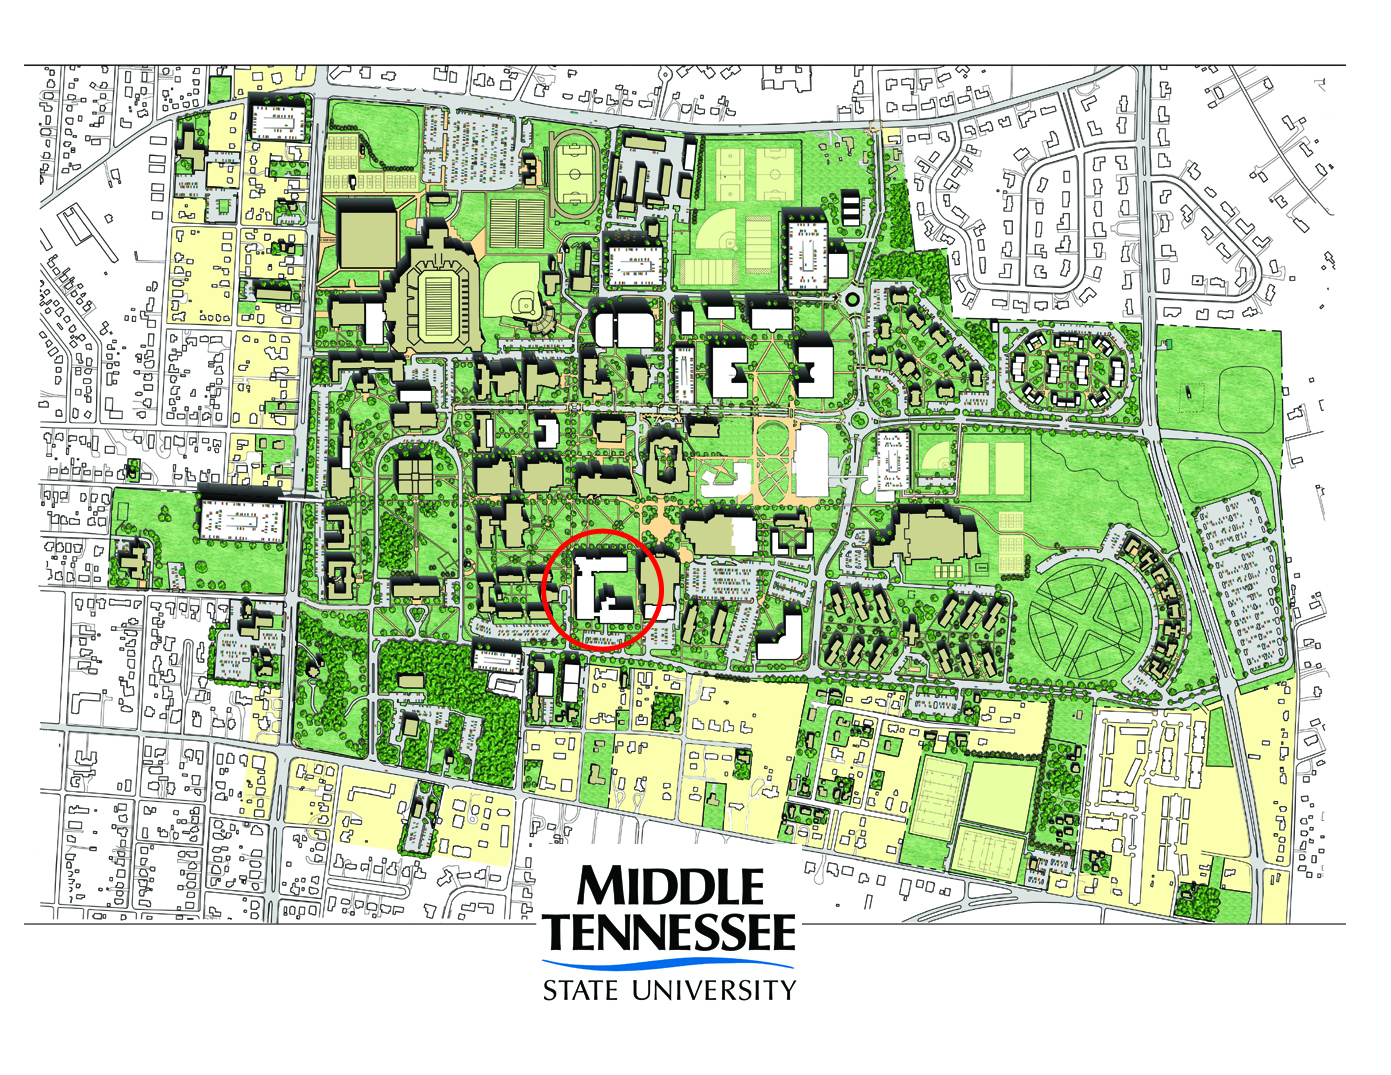 MTSU Science Building on Campus Planning Map – MTSU News